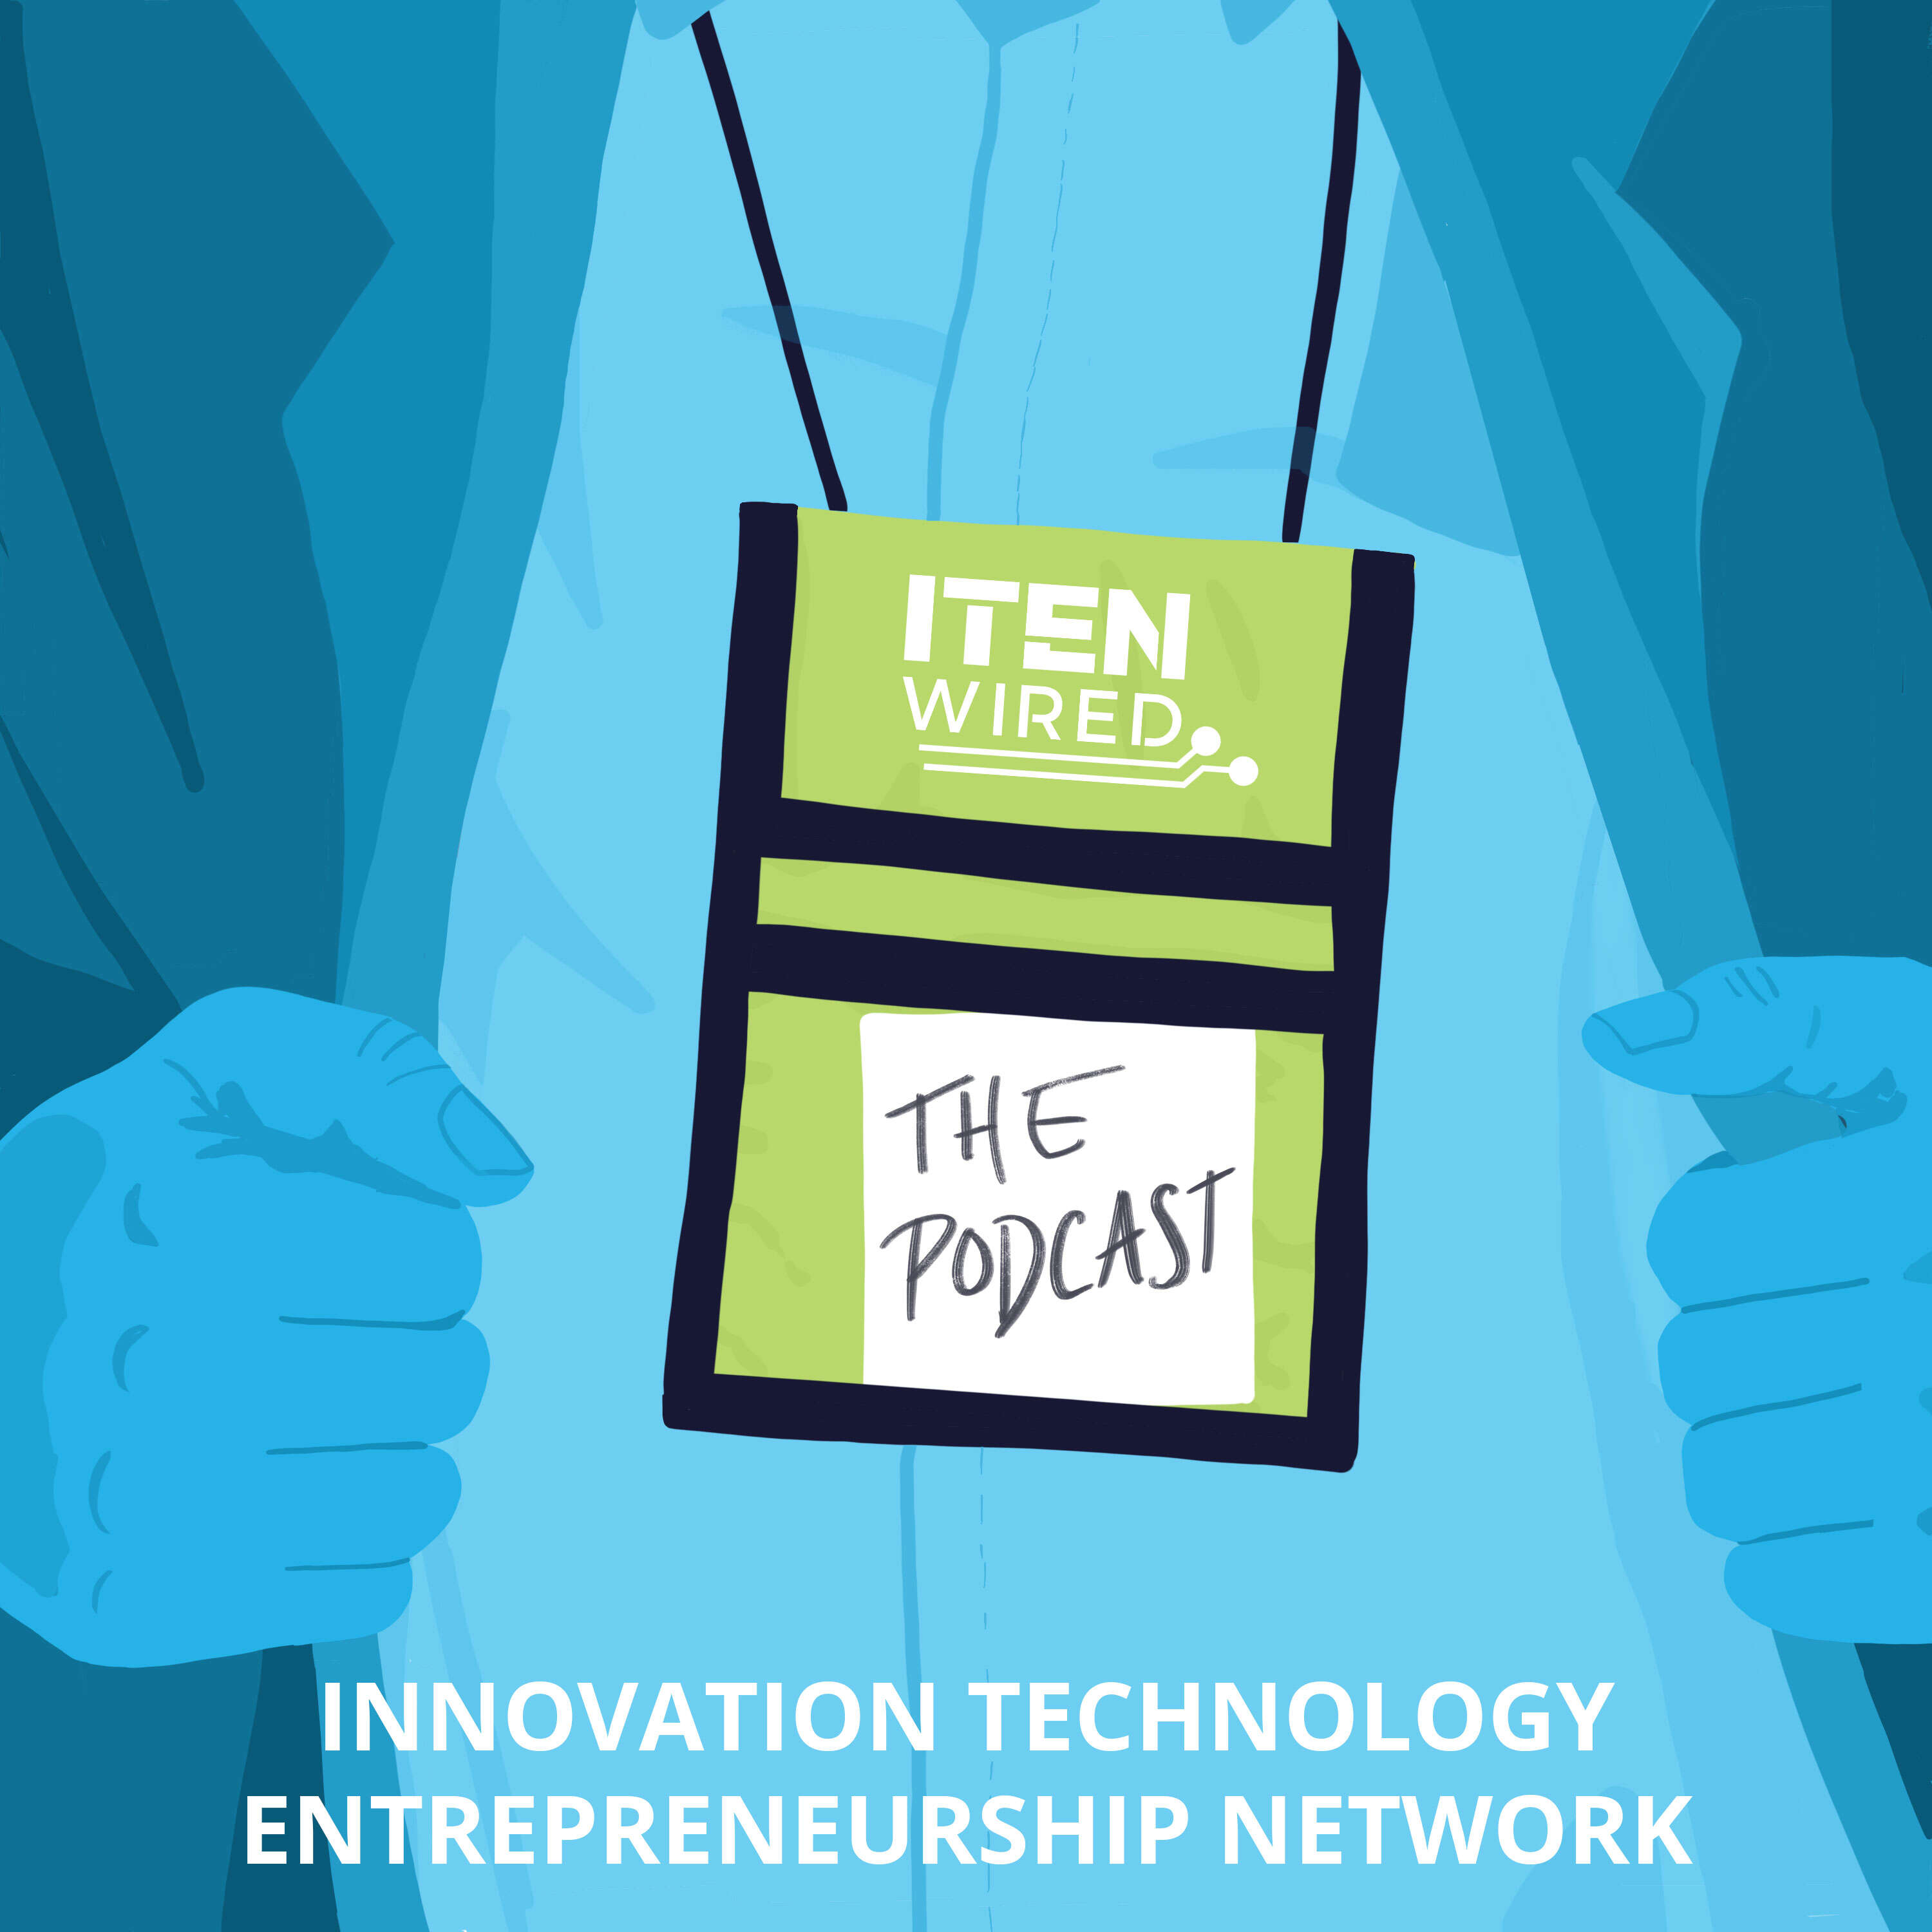 Episode 1: HOW ITEN WIRED IS GROWING THE CYBER COAST AND HOW ENTREPRENEURS AND IT PROFESIONALS CAN BENEFIT